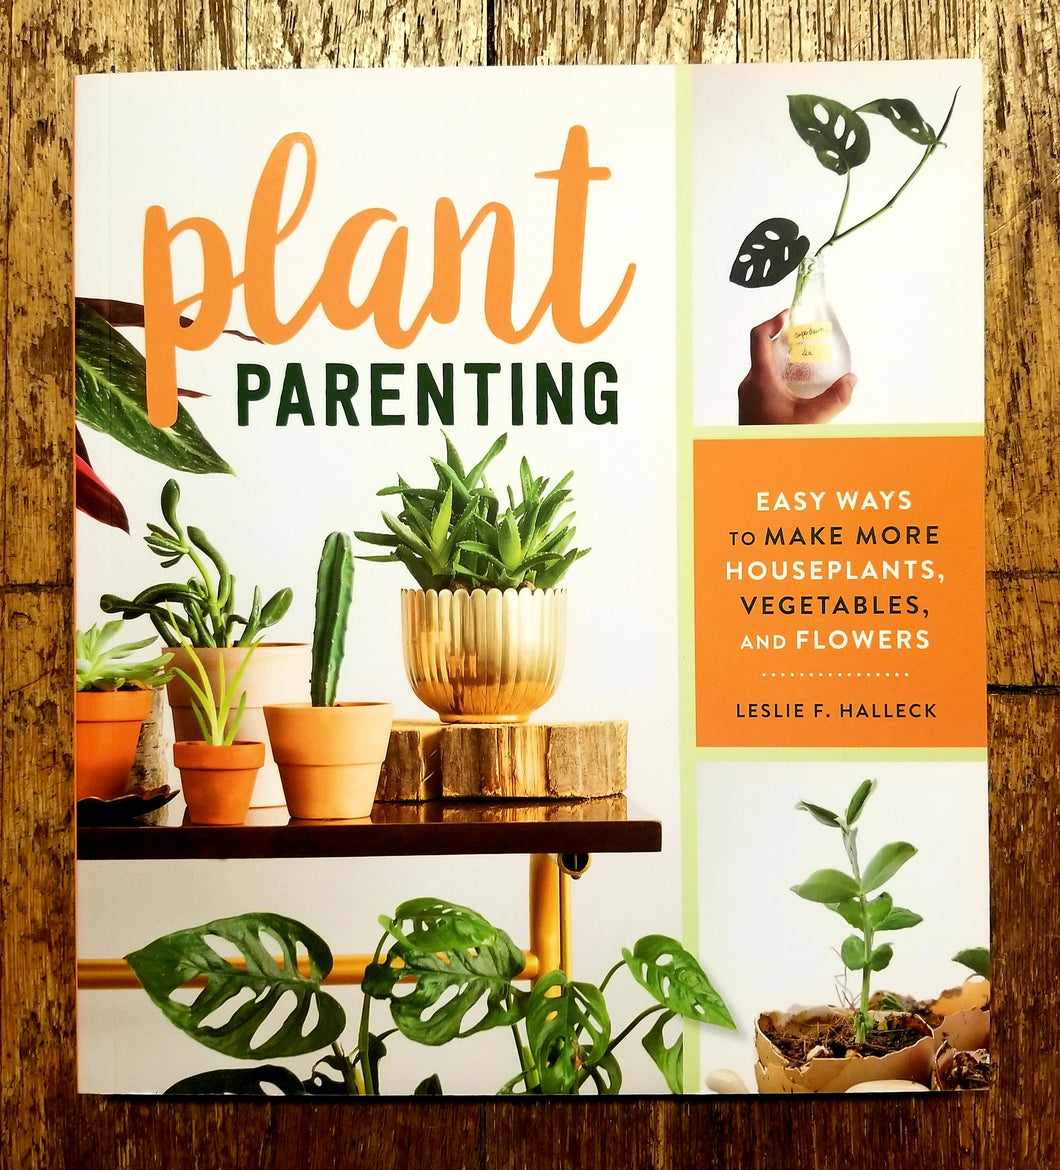 Plant Parenting: Easy Ways to Make More Houseplants, Vegetables, and Flowers by Leslie F. Halleck